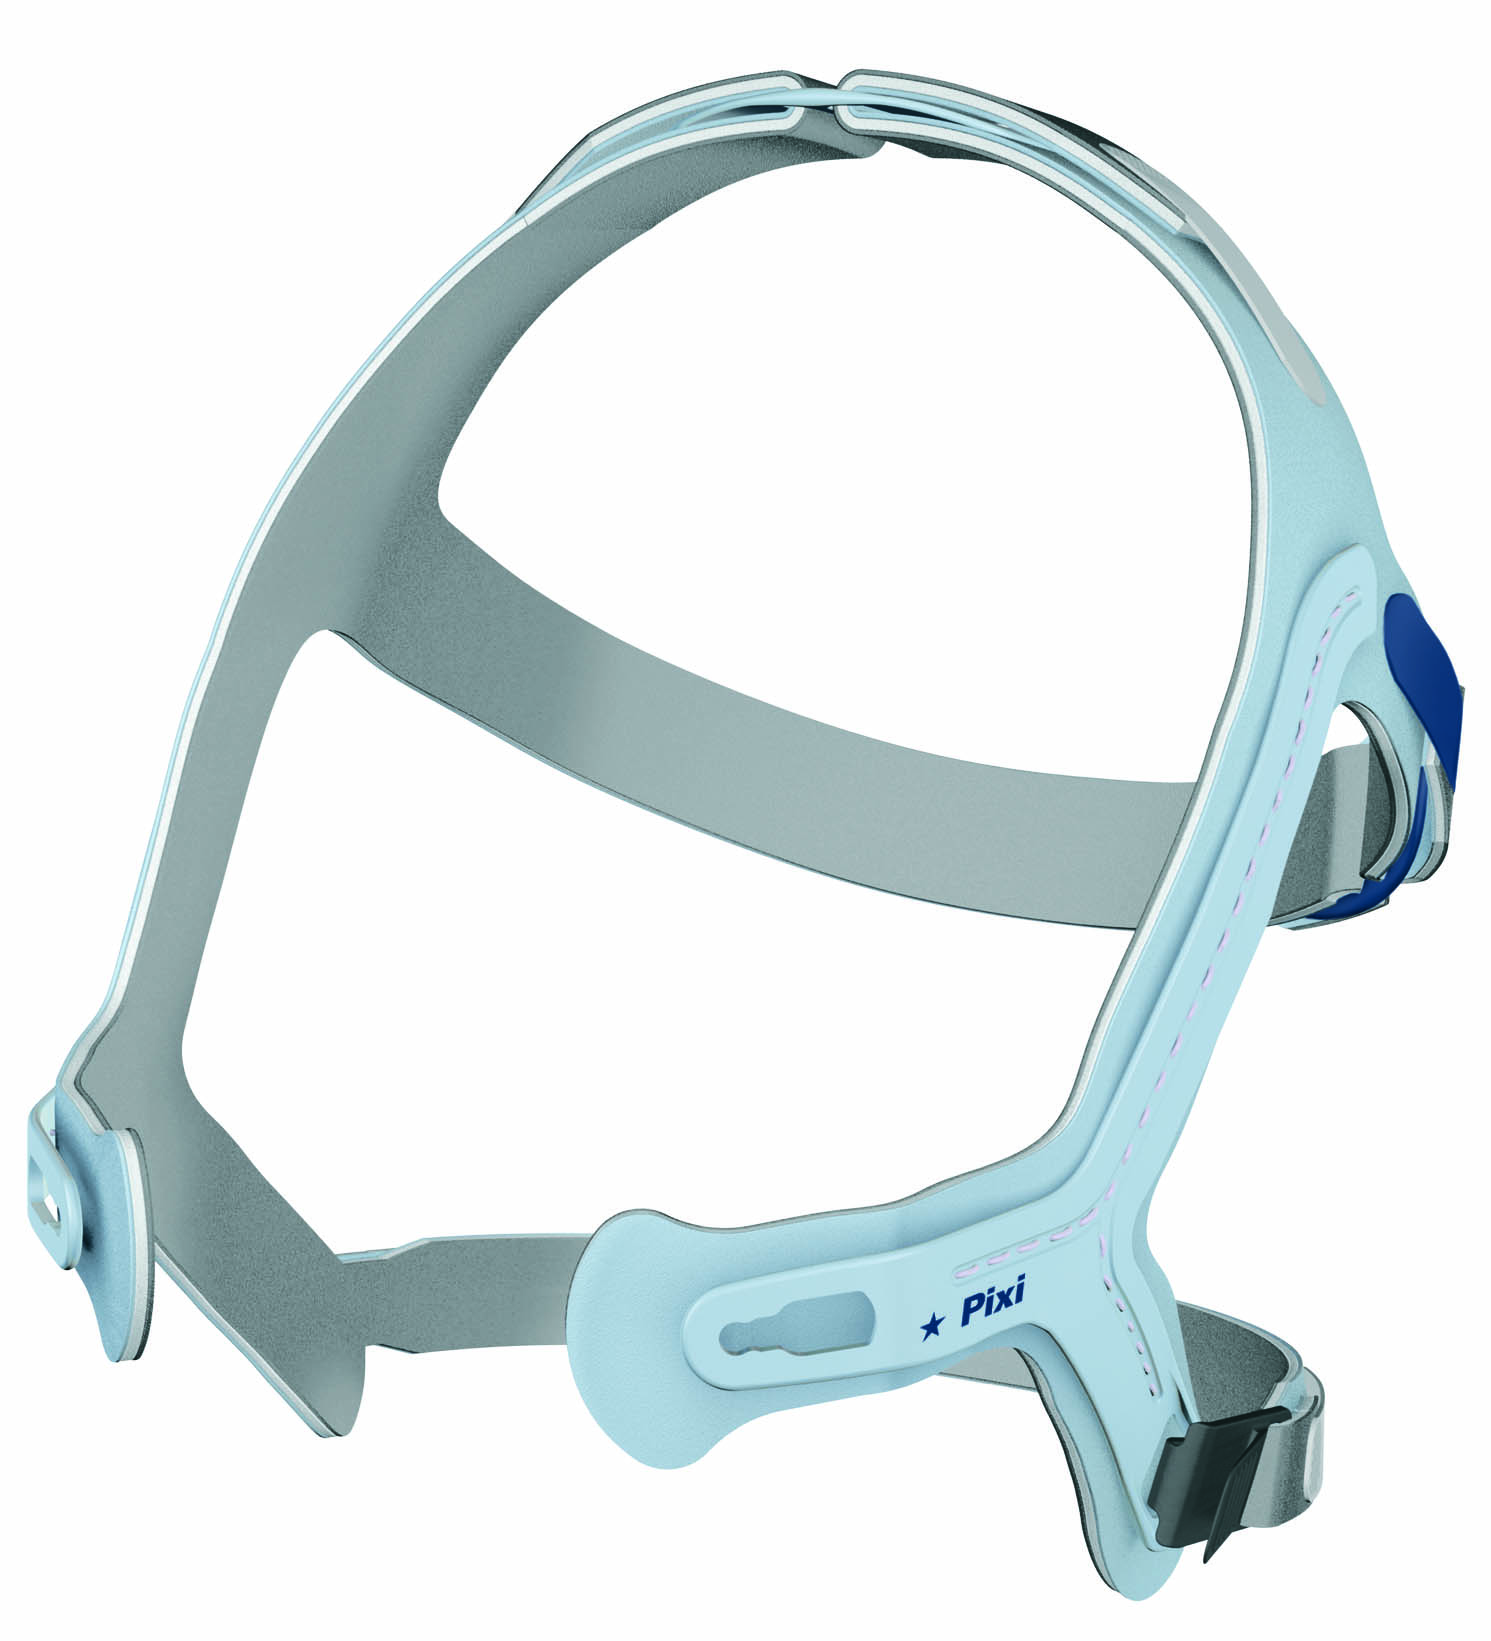 ResMed Pixi Pediatric Nasal Mask Headgear